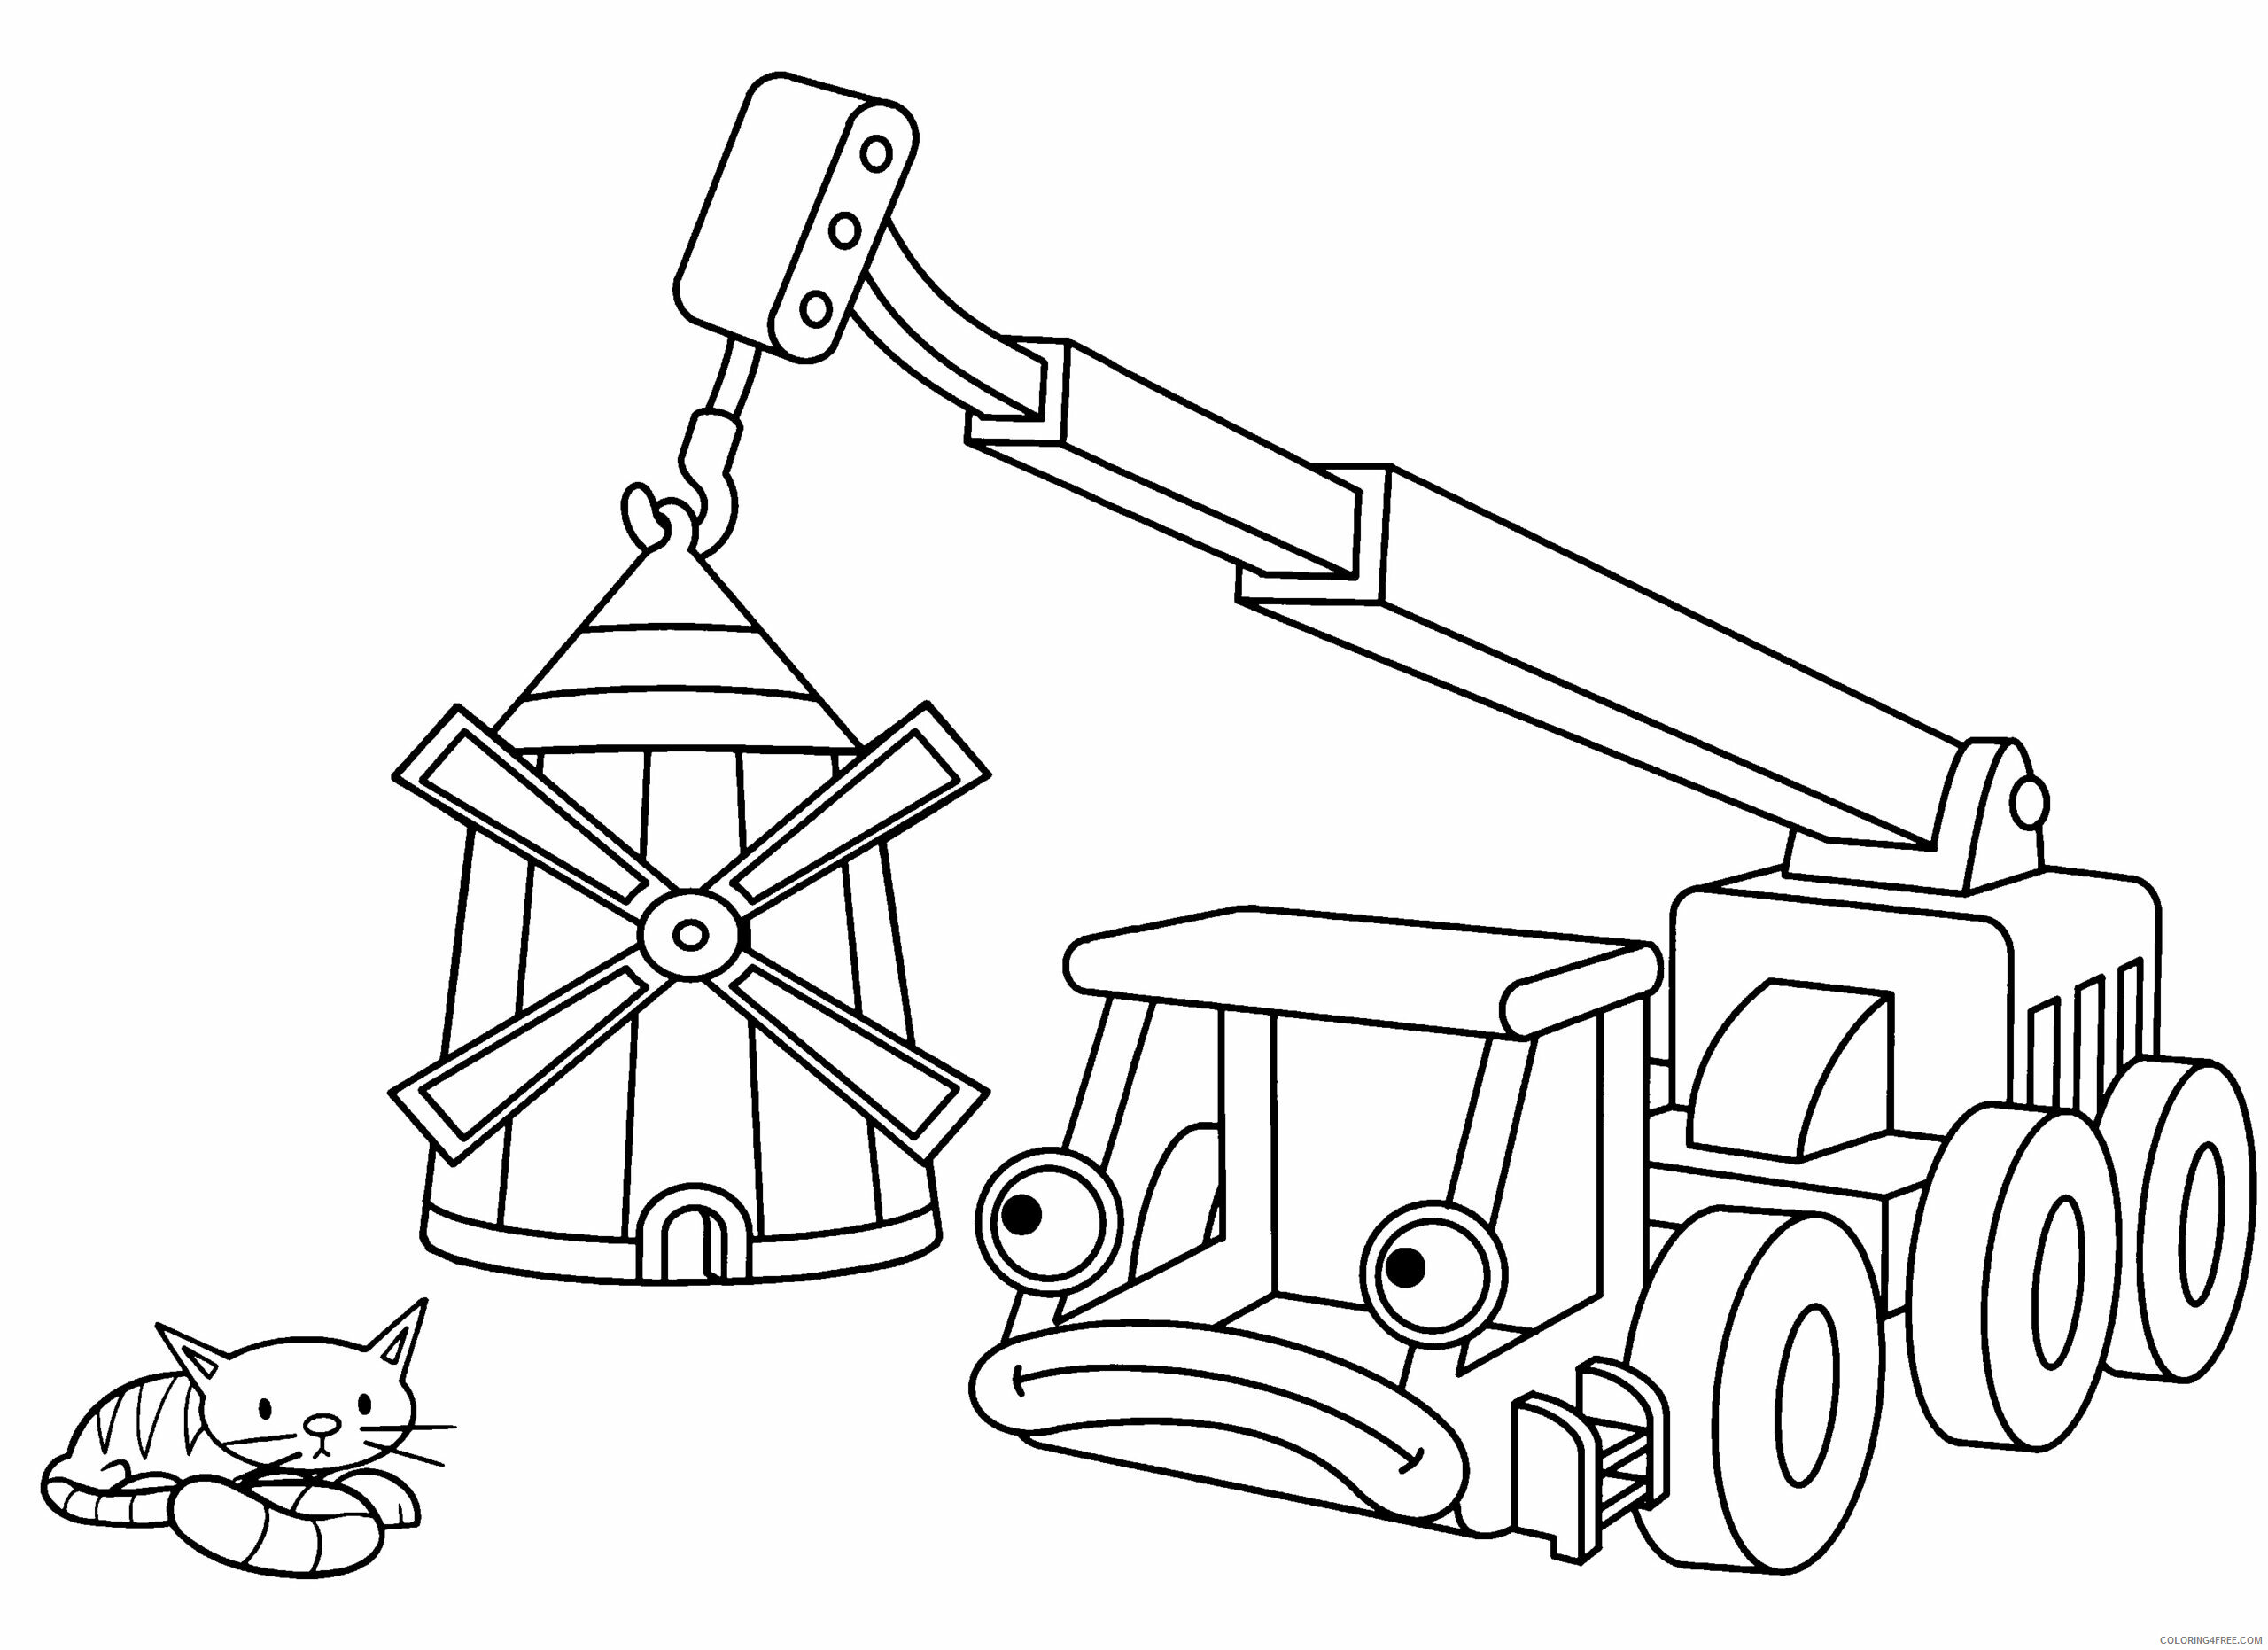 Bob the Builder Coloring Pages TV Film bob the builder 65 Printable 2020 01087 Coloring4free